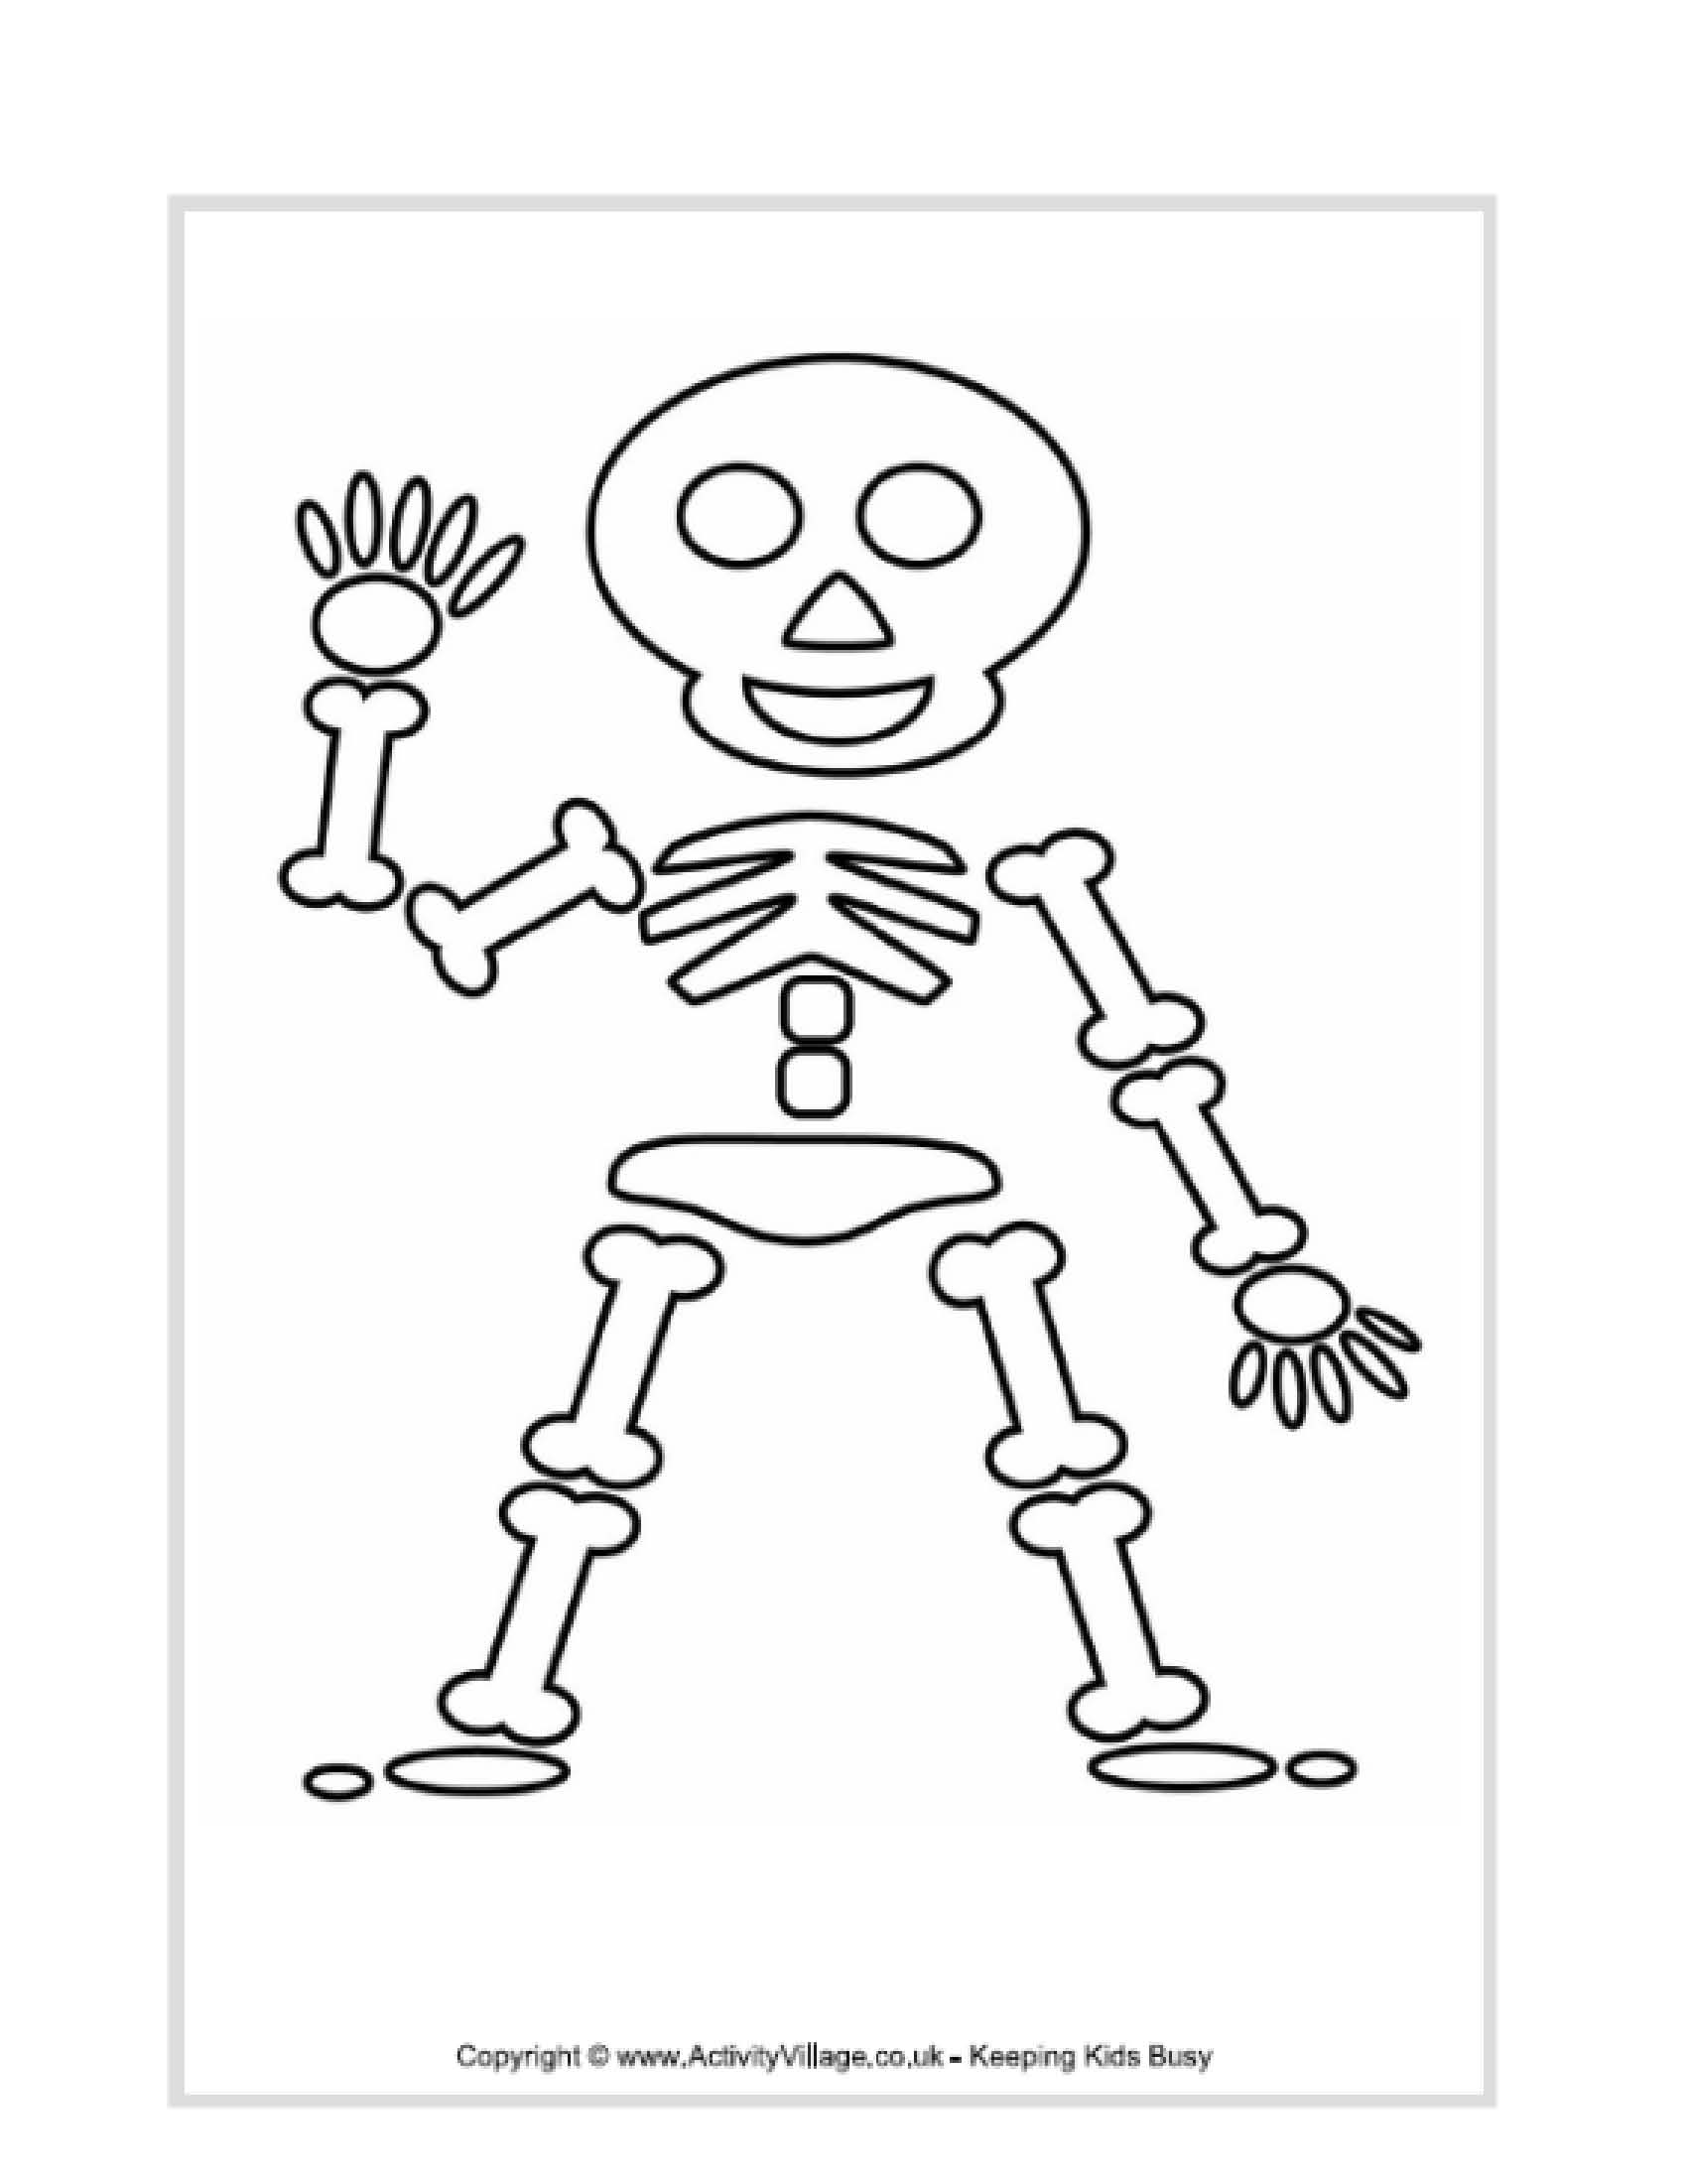 Free Kids Skeleton Drawing Download Free Clip Art Free